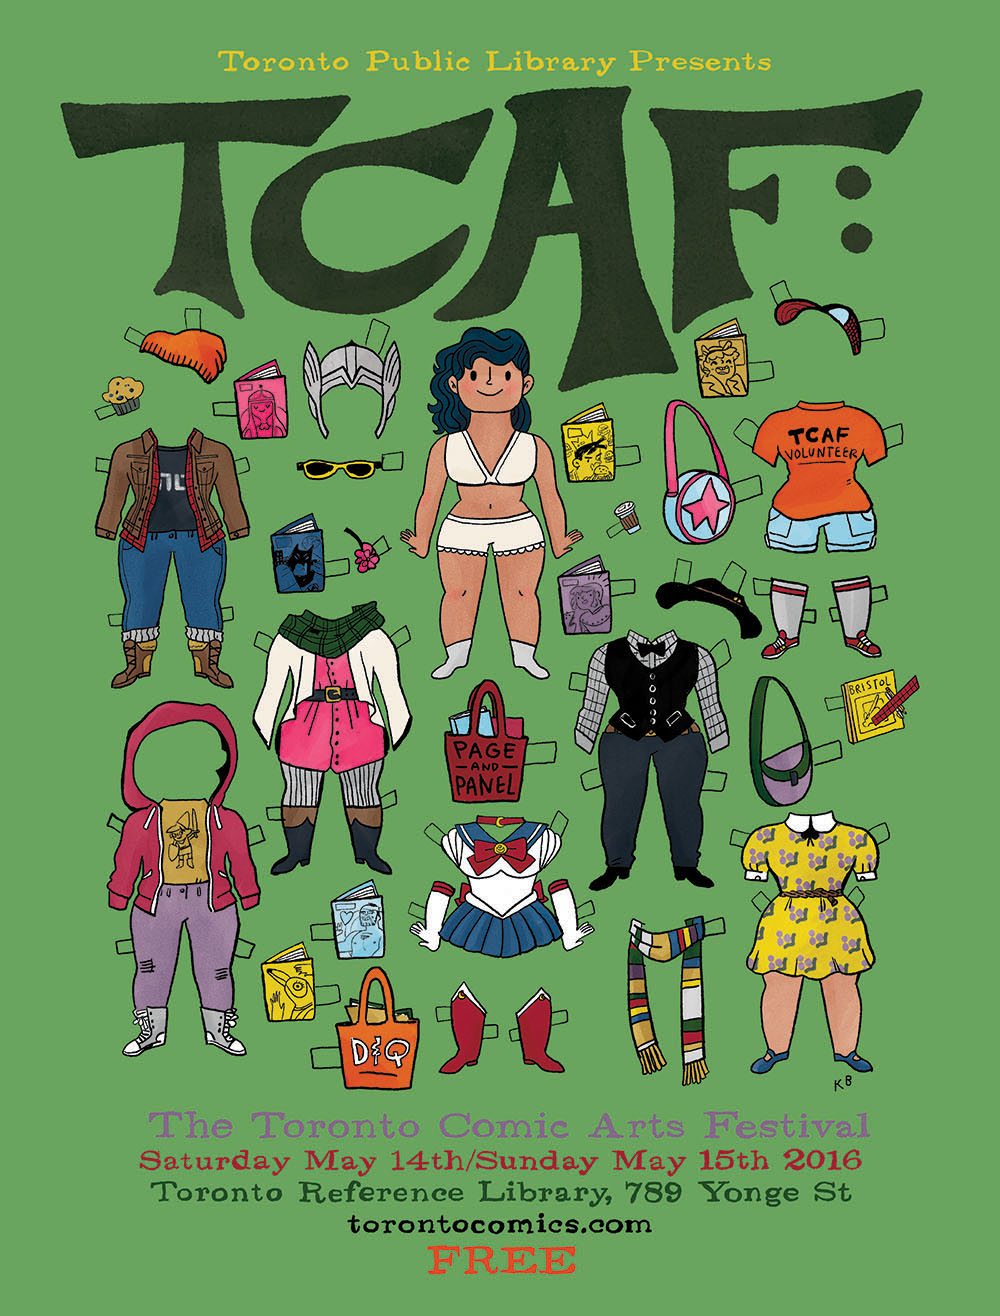 Os cartazes do Toronto Comic Arts Festival 2016, por Kate Beaton e Kazu Kibuishi